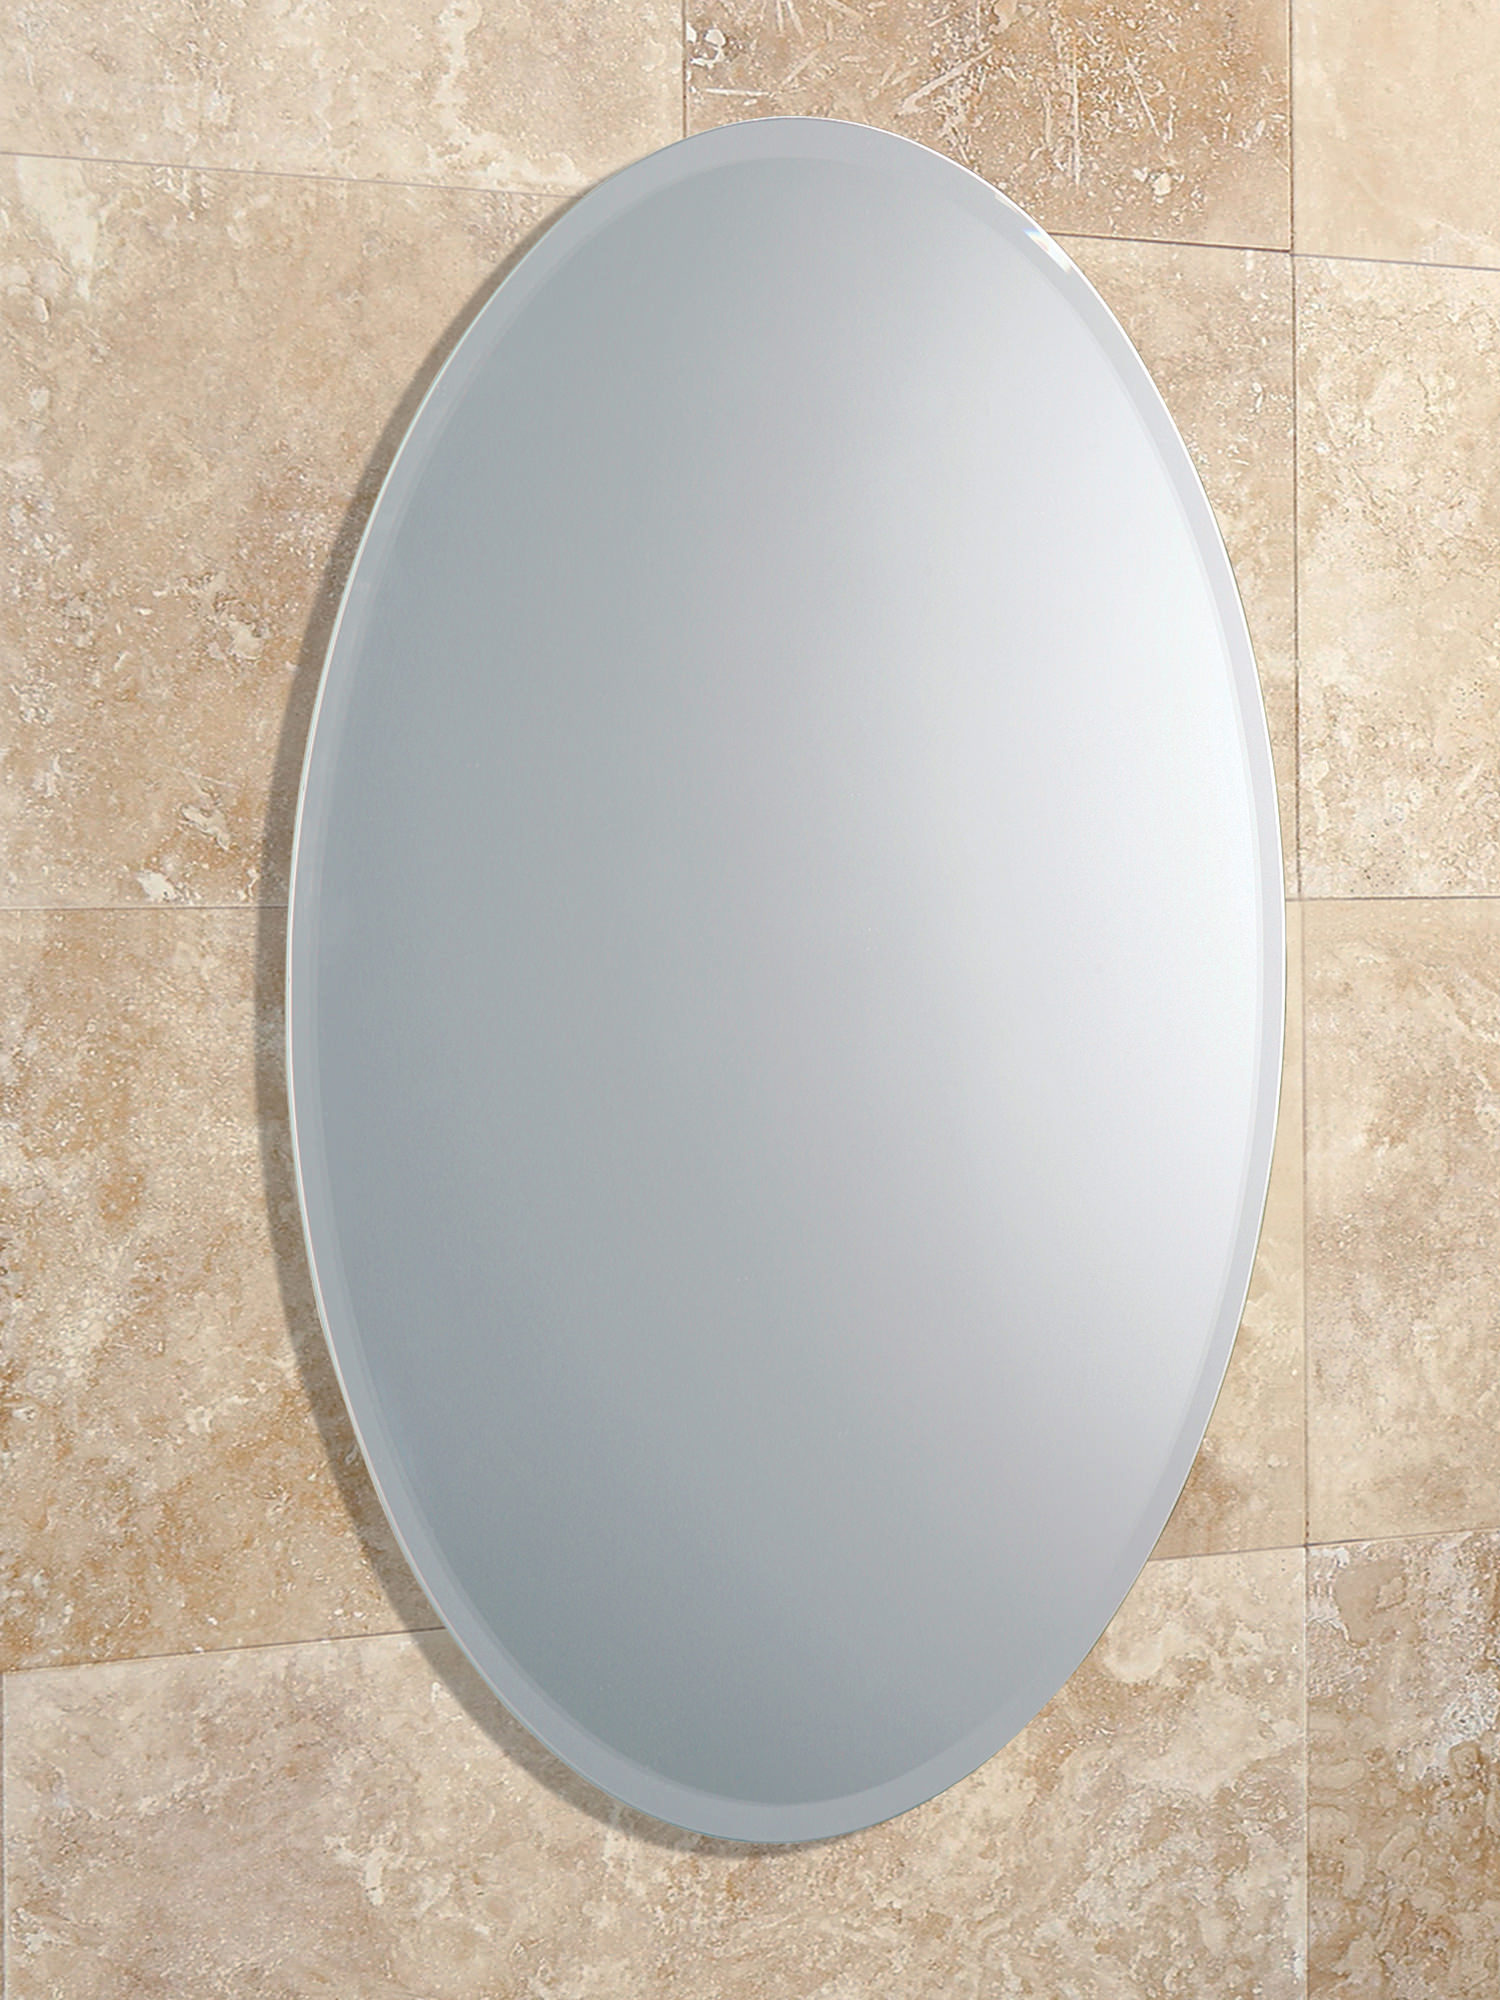 bevelled bathroom mirrors hib alfera oval shaped mirror with bevelled edge 61643000 12074